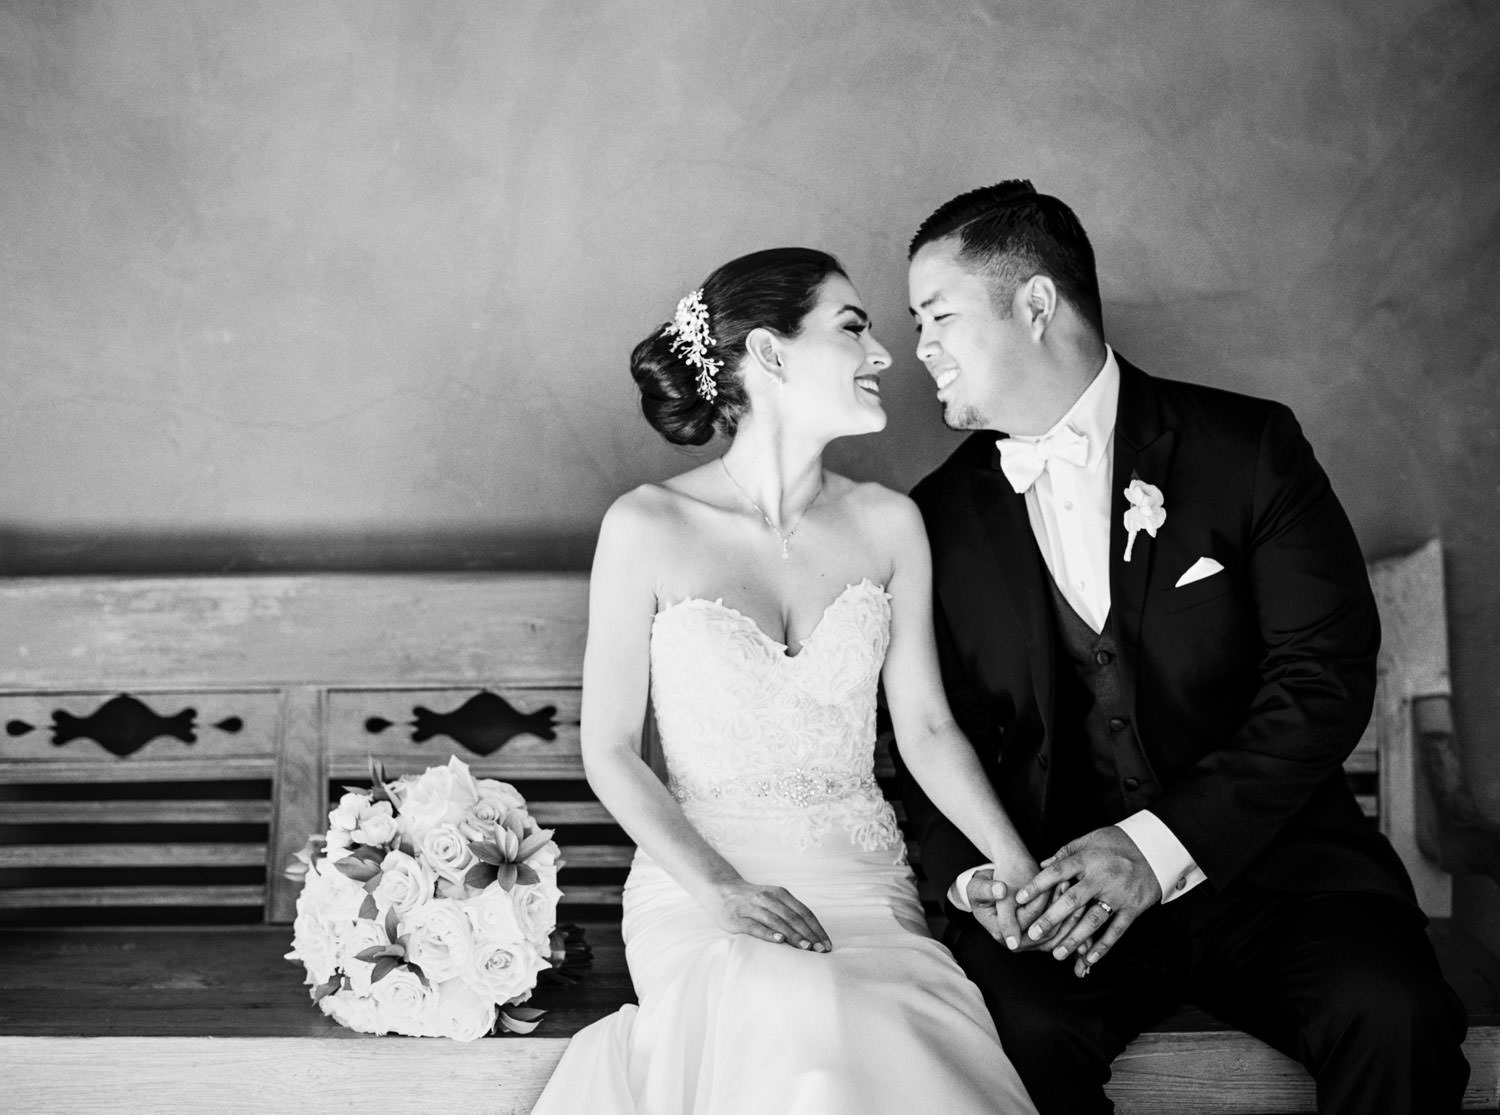 Bride and groom on a bench captured on film, Santalux Club wedding reception, Cavin Elizabeth Photography